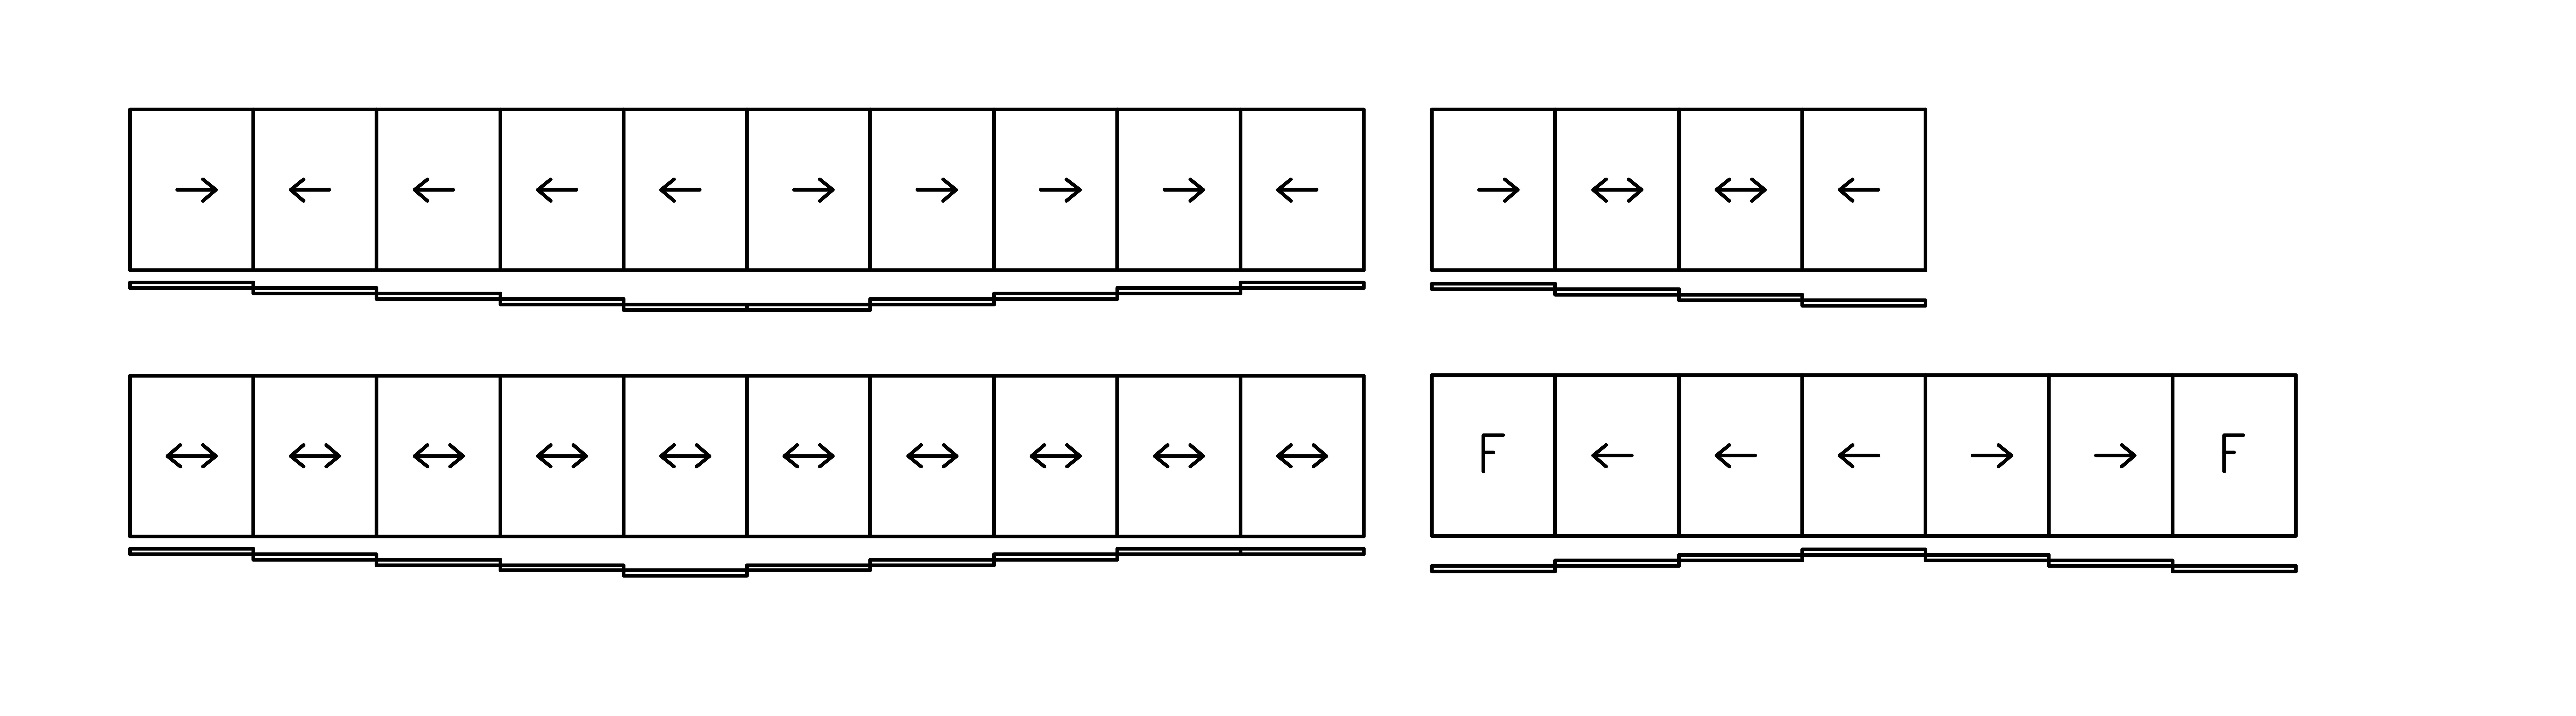 multiple track configurations